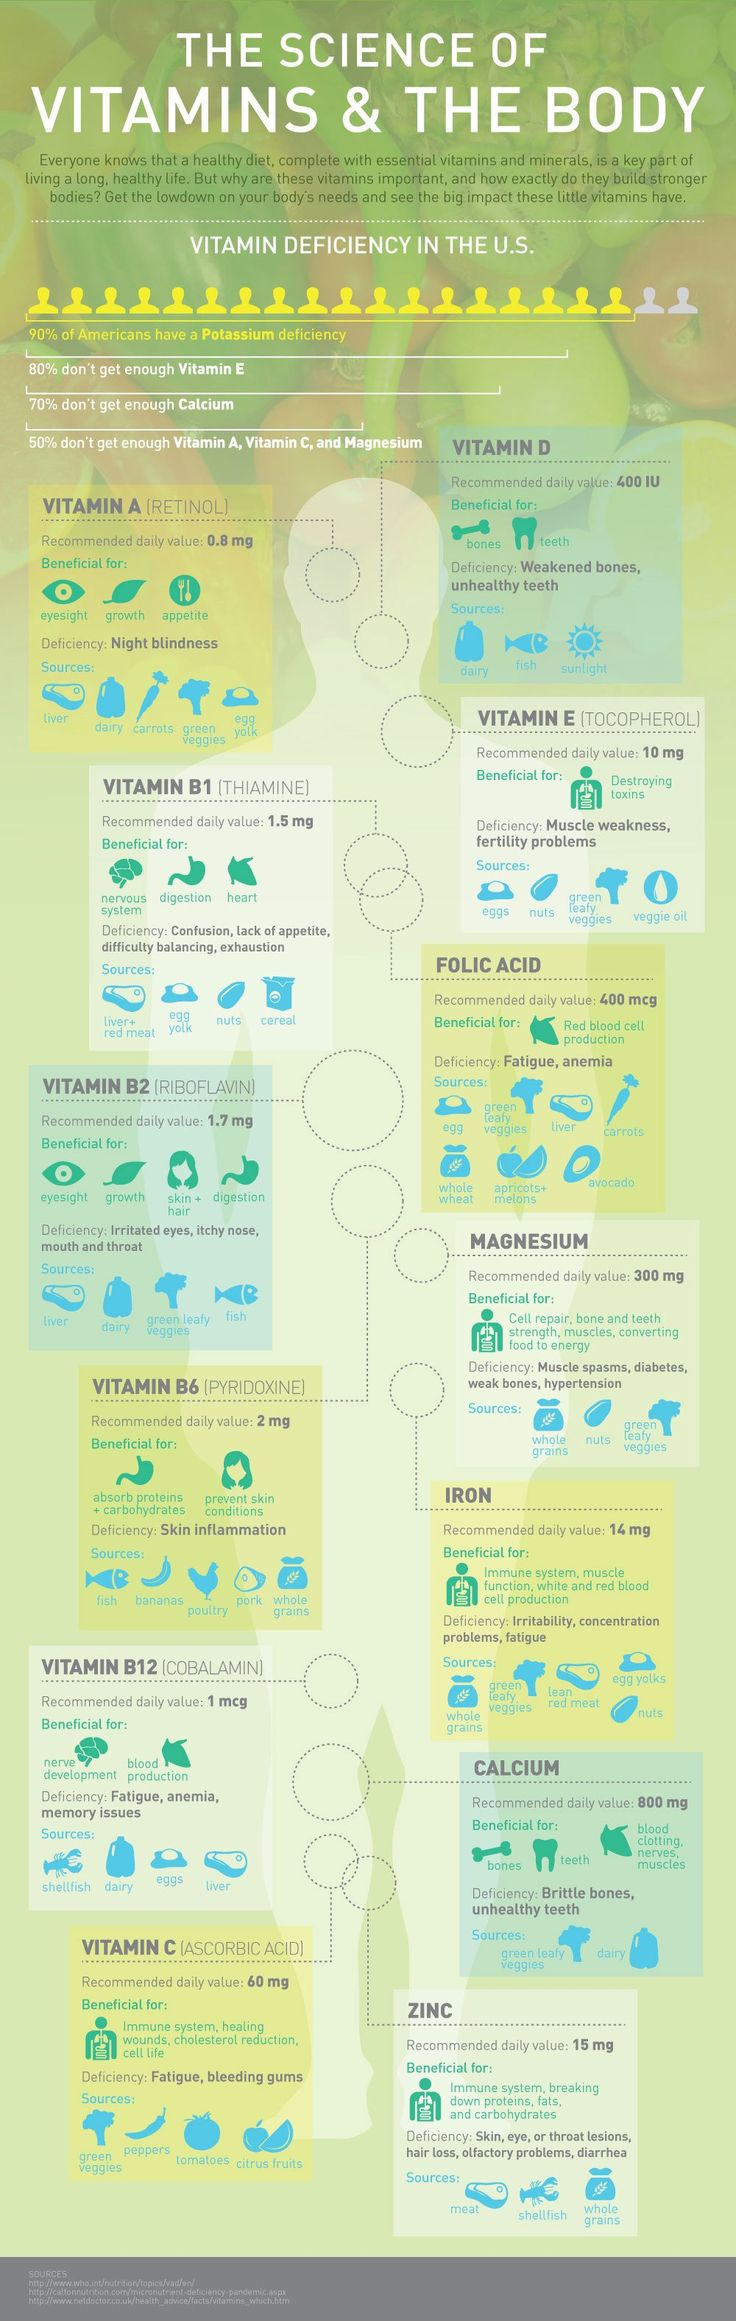 Vitamin Deficiency Infographic Follow Us: www.facebook.com/ACEYourselfHealthy